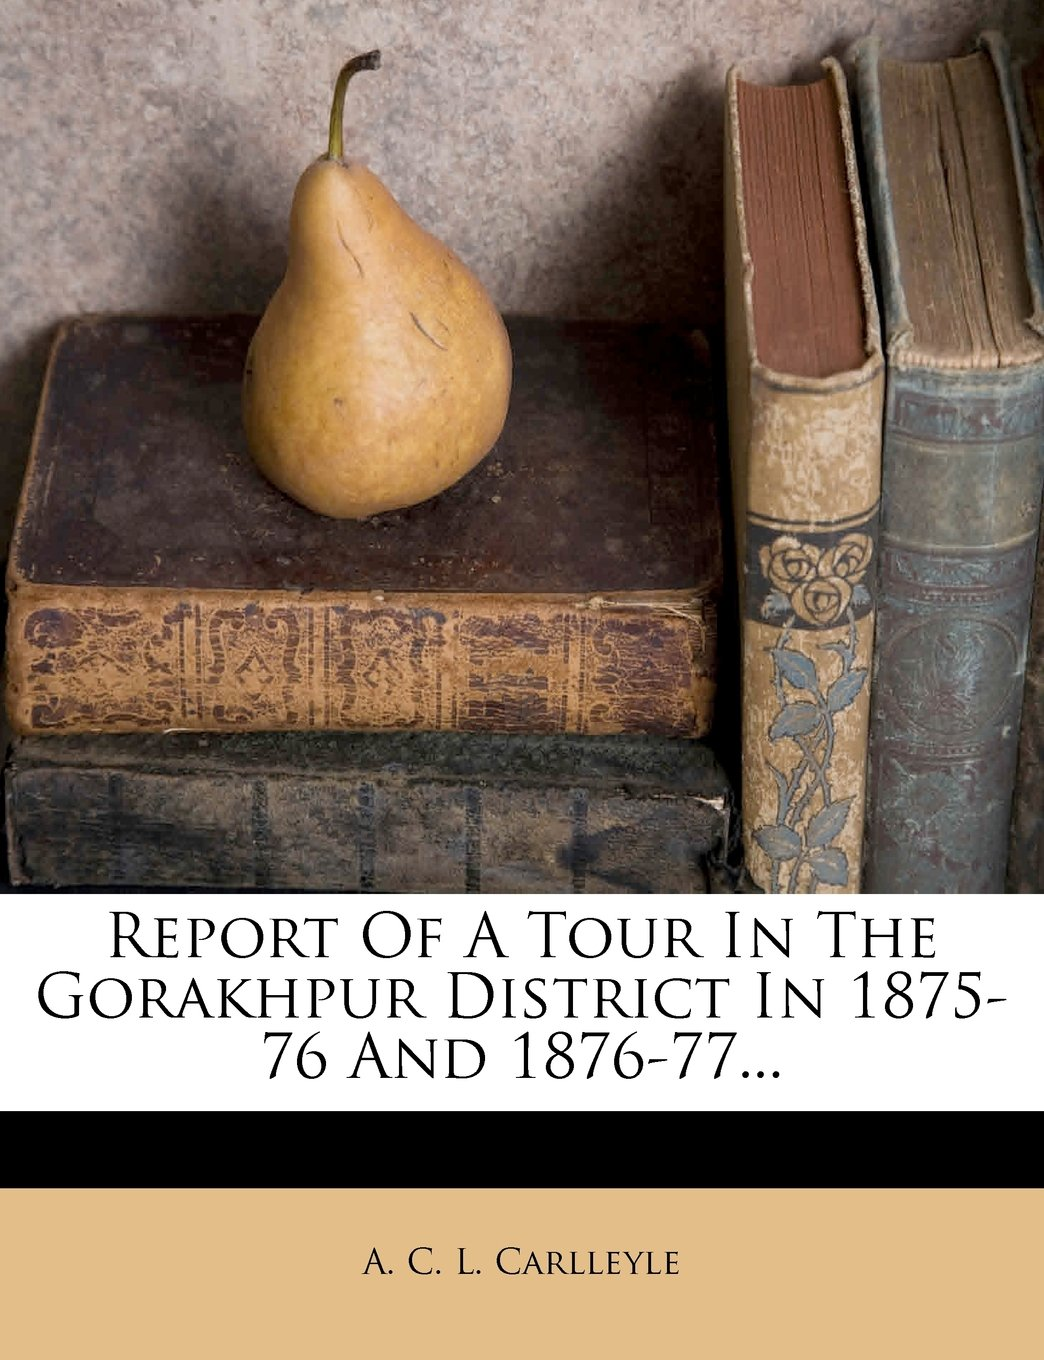 Read Online Report Of A Tour In The Gorakhpur District In 1875-76 And 1876-77... PDF